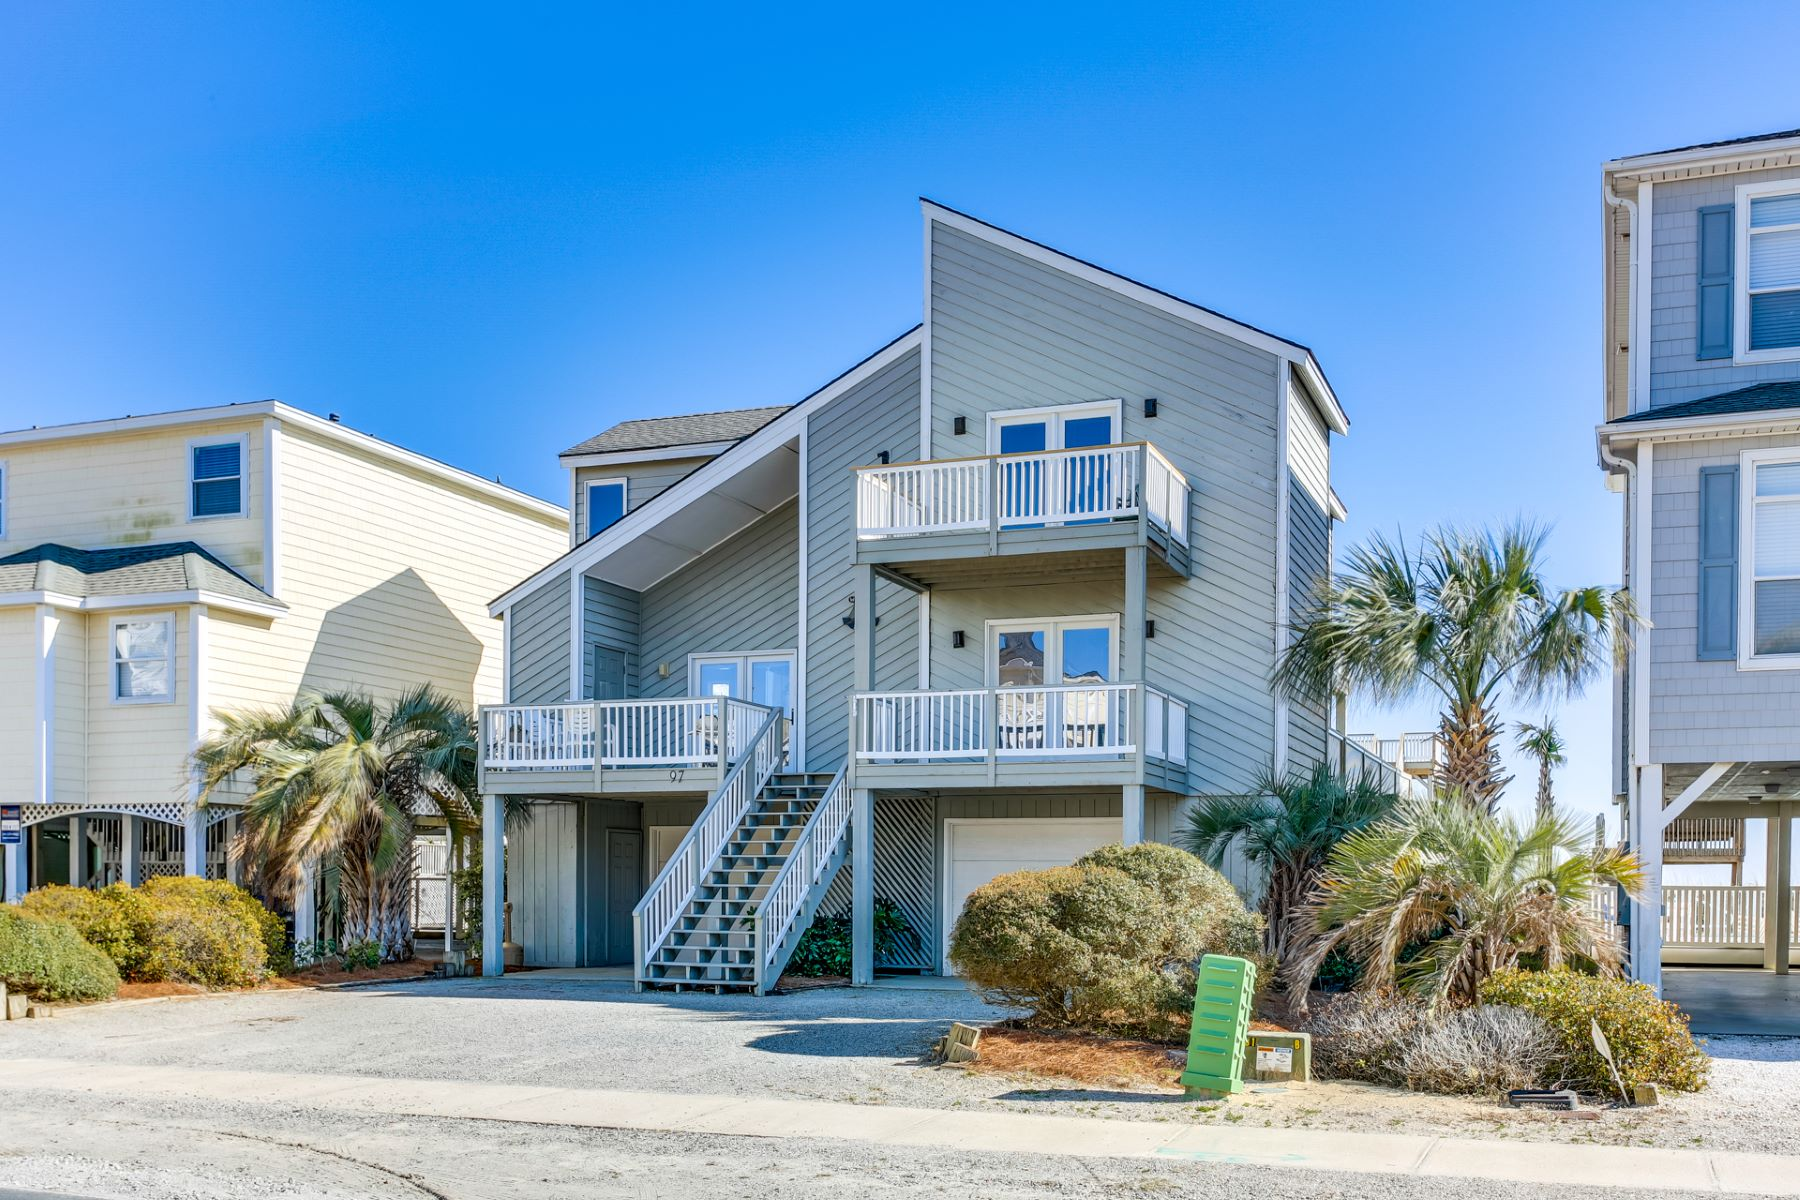 Single Family Home for Active at Oceanfront Home in Beautiful Ocean Isle Beach 97 W First Street Ocean Isle Beach, North Carolina 28469 United States